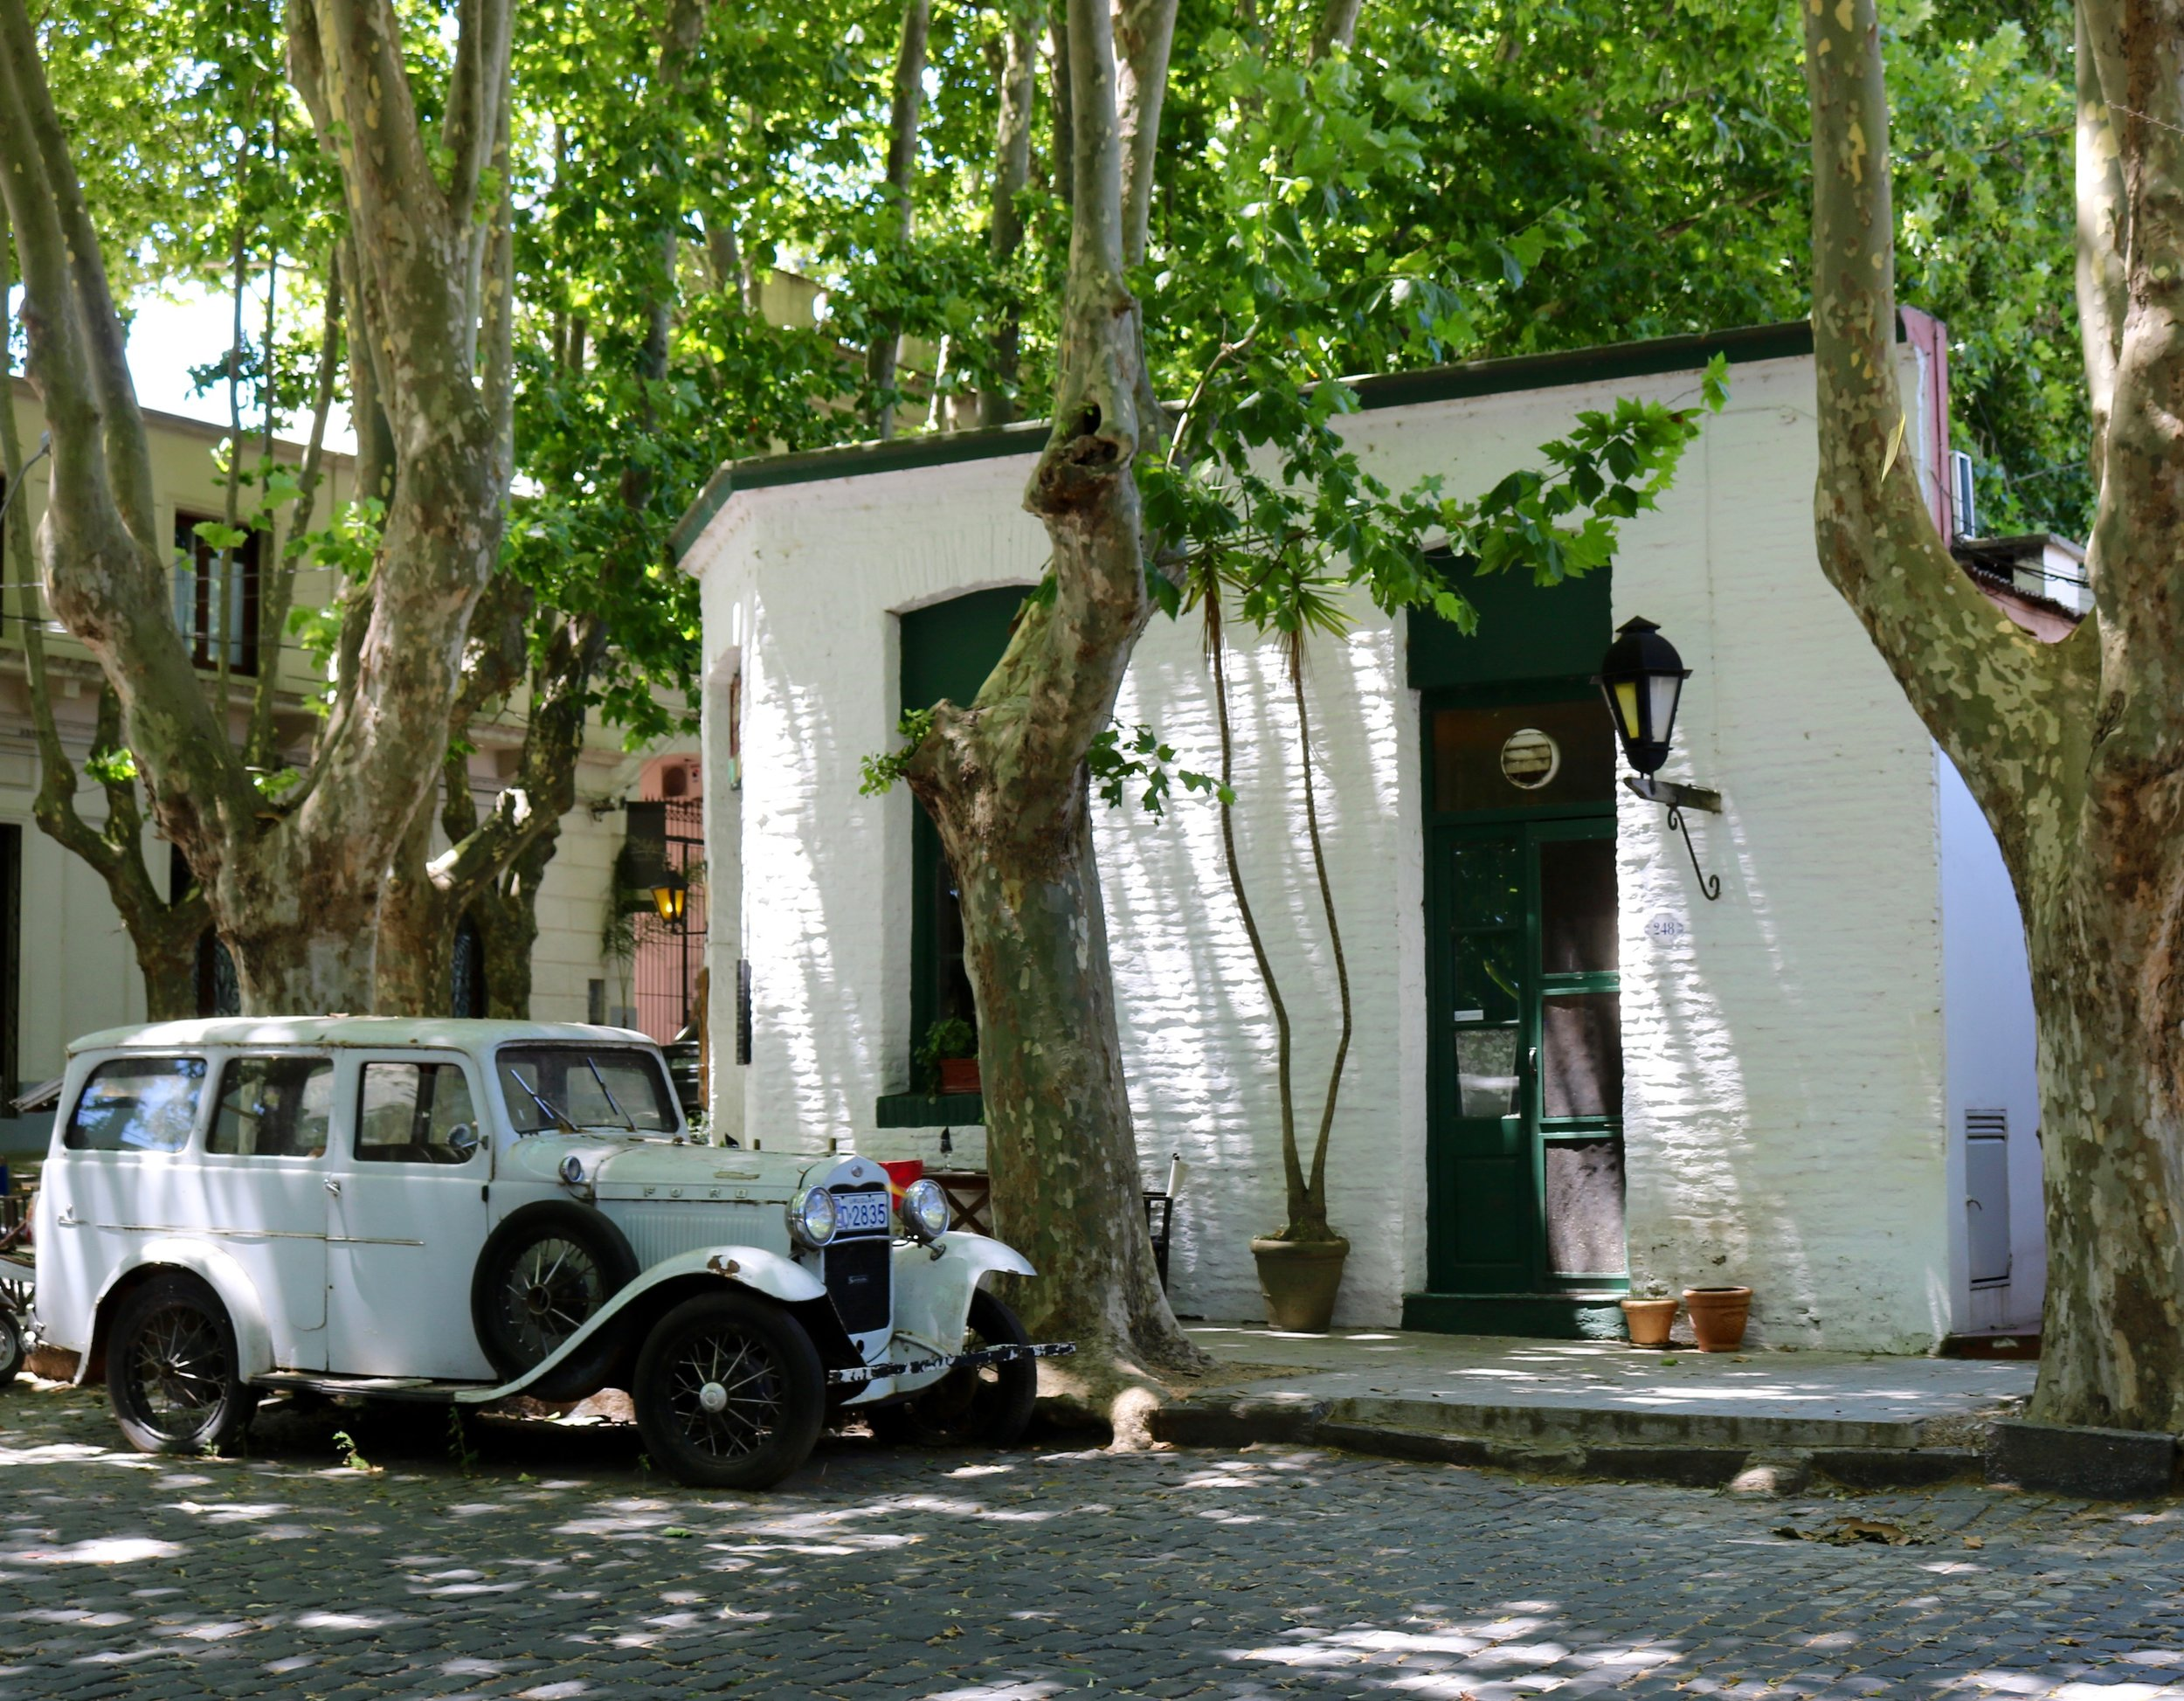 """The cobblestone historical part of Colonia is filled with old cars, many of which have been upcycled and turned into planters, nonetheless they help to create a lovely """"old-school"""" vibe throughout the city."""